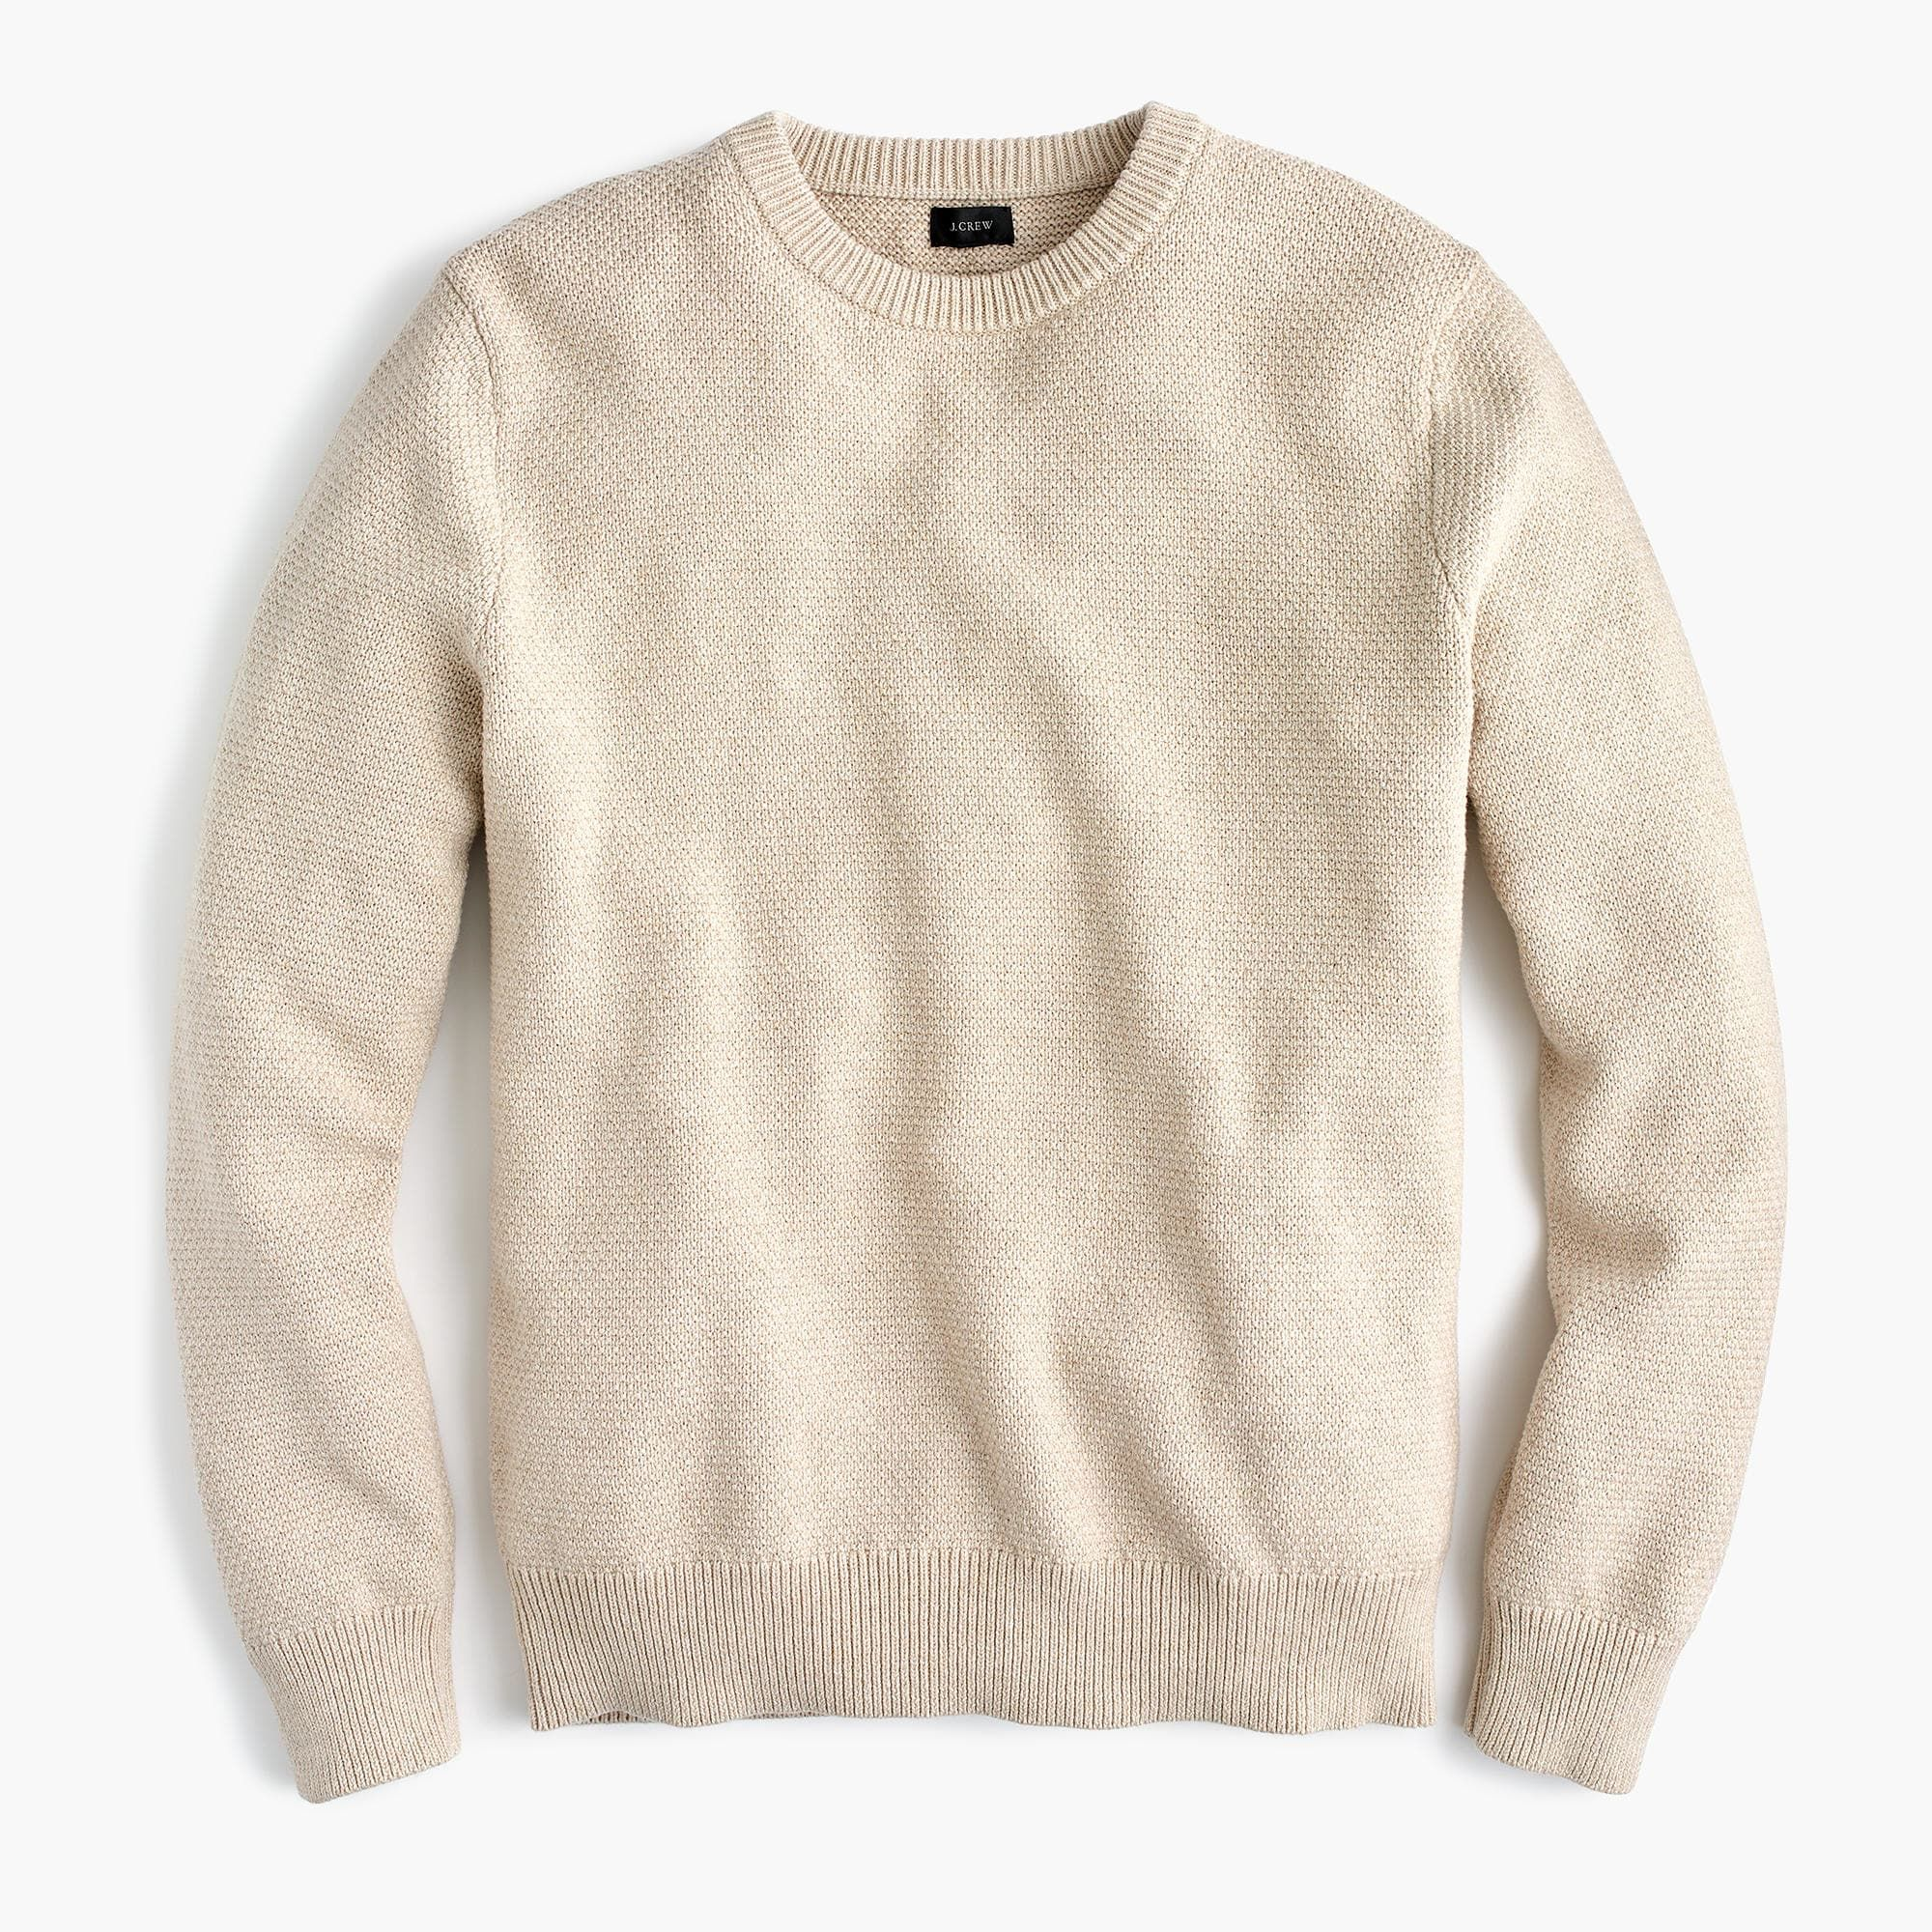 J.Crew - Cotton crewneck sweater in moss stitch  a2180aba3